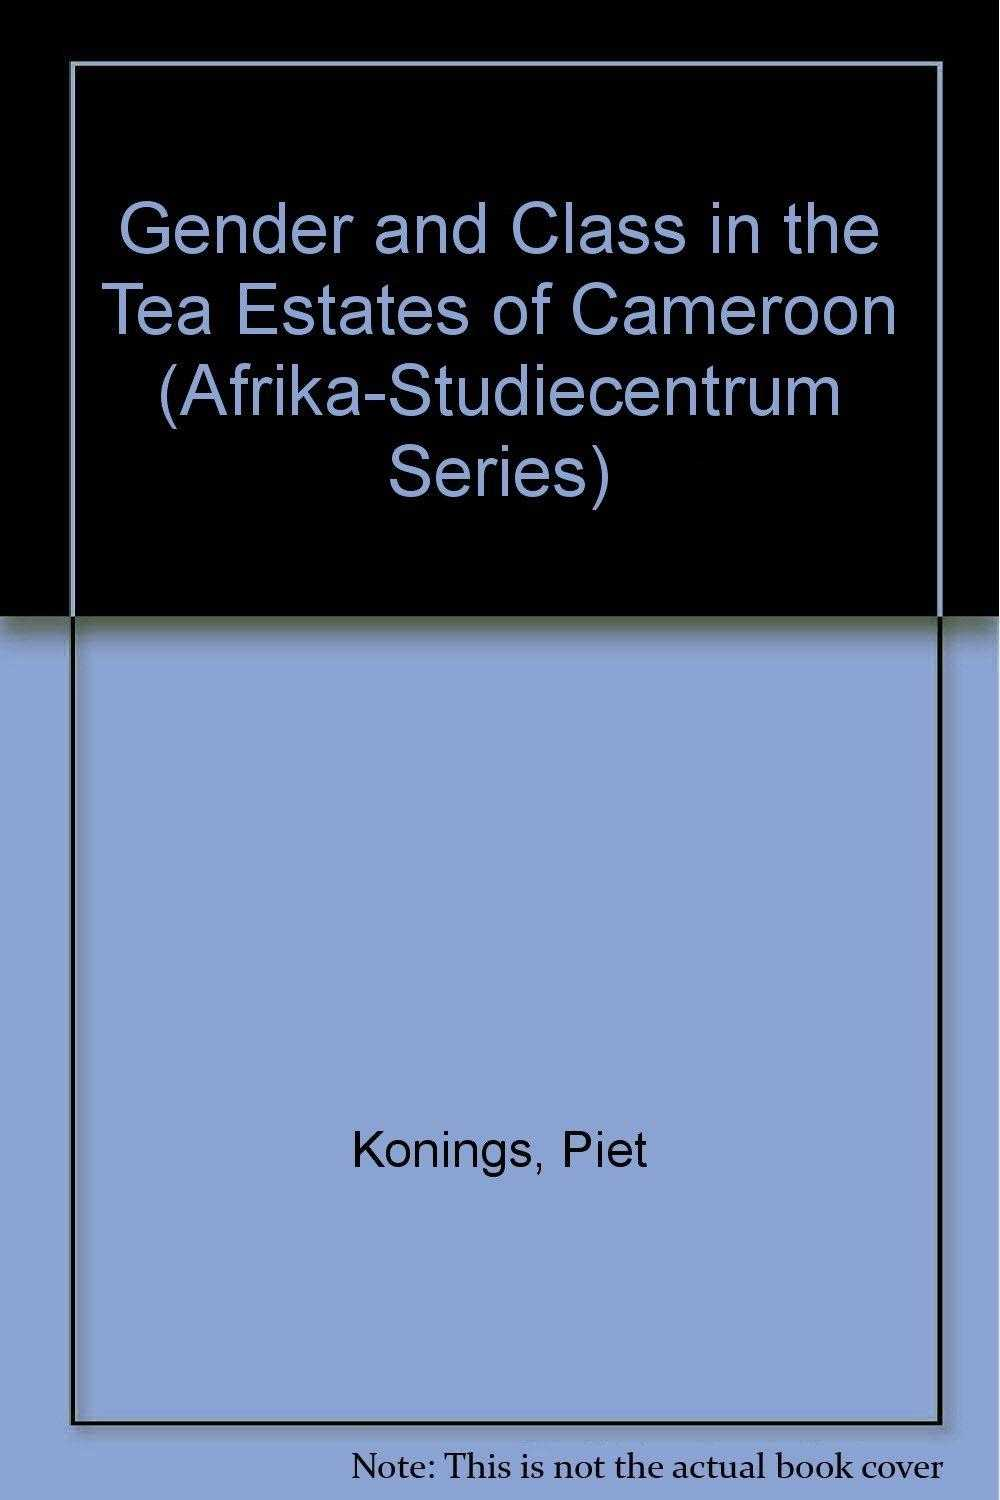 KONINGS, PIET - Gender and Class in the Tea Estates of Cameroon (Afrika-Studiecentrum Series).